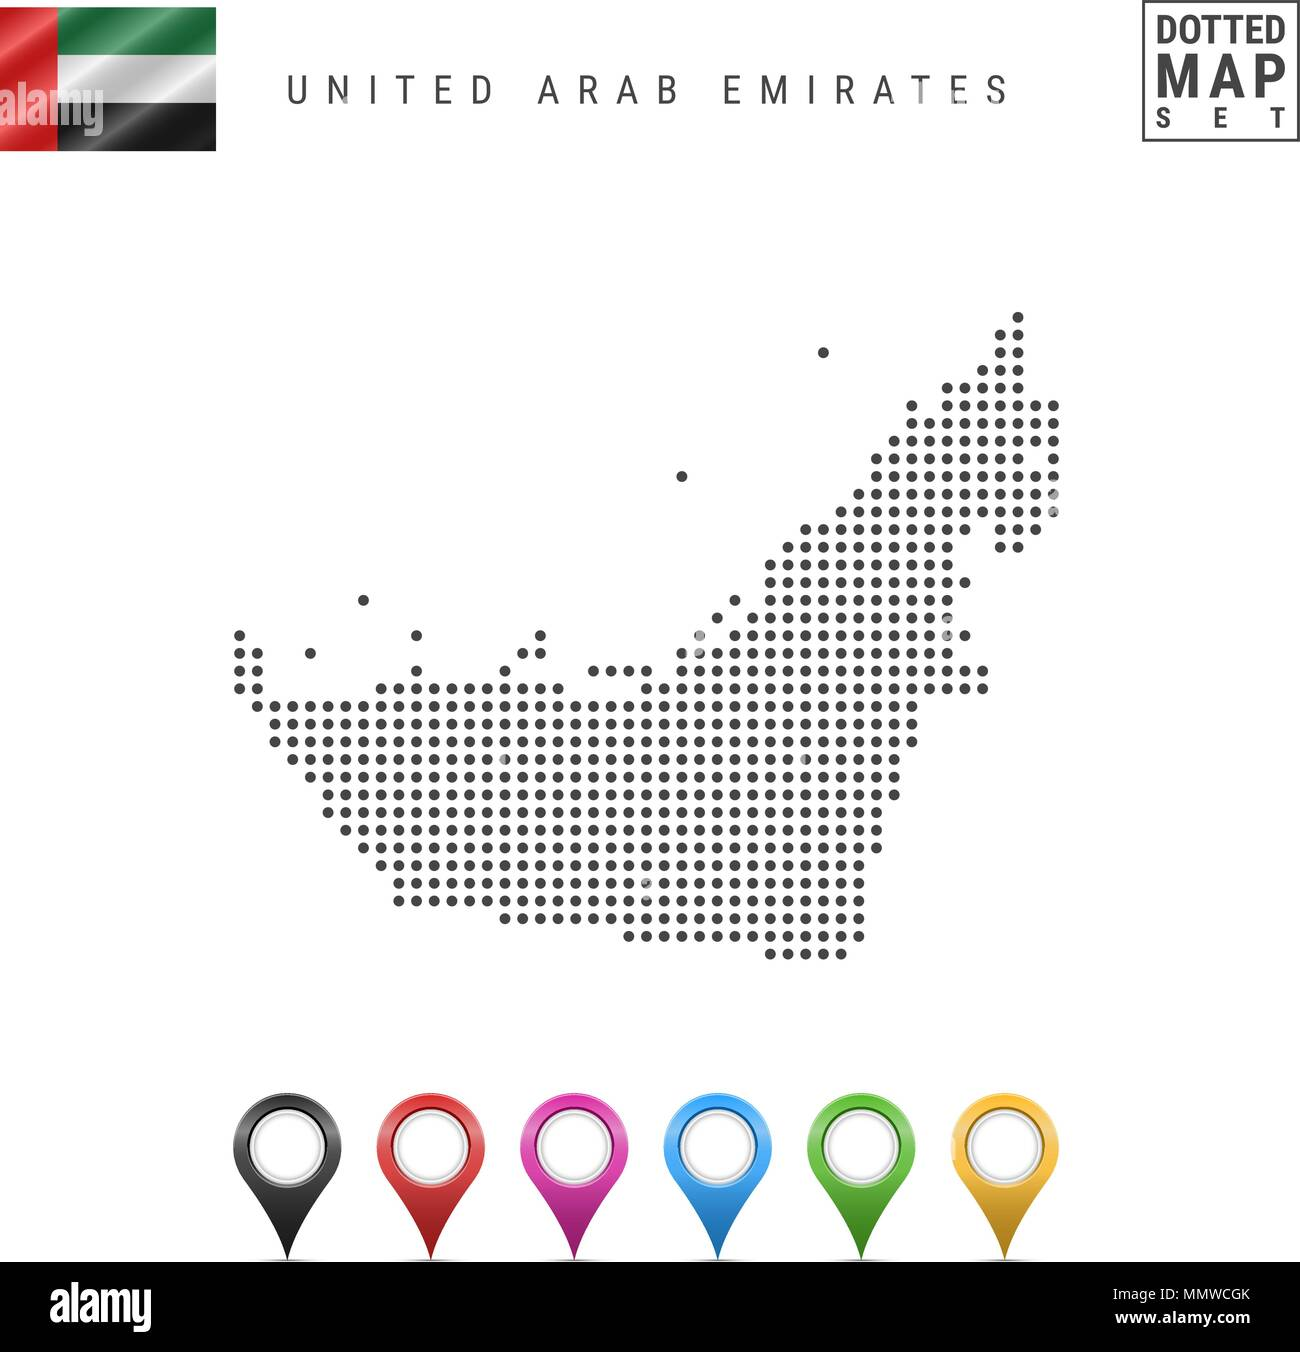 Vector Dotted Map of United Arab Emirates. United Arab Emirates Silhouette. United Arab Emirates Flag. Map Markers Set - Stock Image